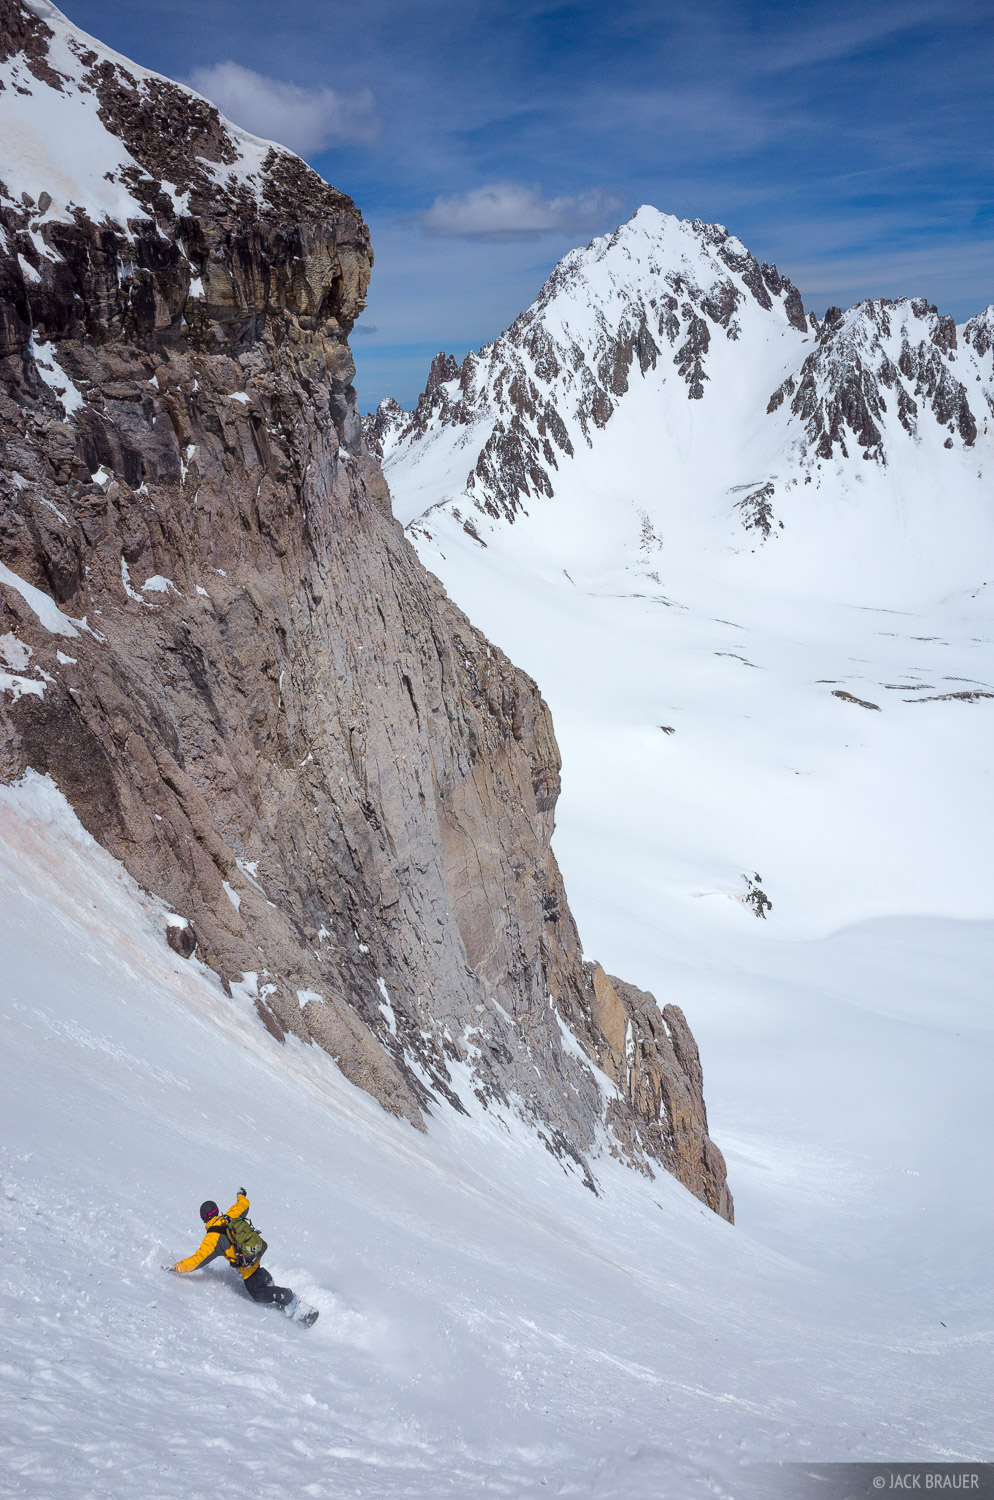 Colorado,Gilpin Peak,San Juan Mountains,Sneffels Range, snowboarding, photo